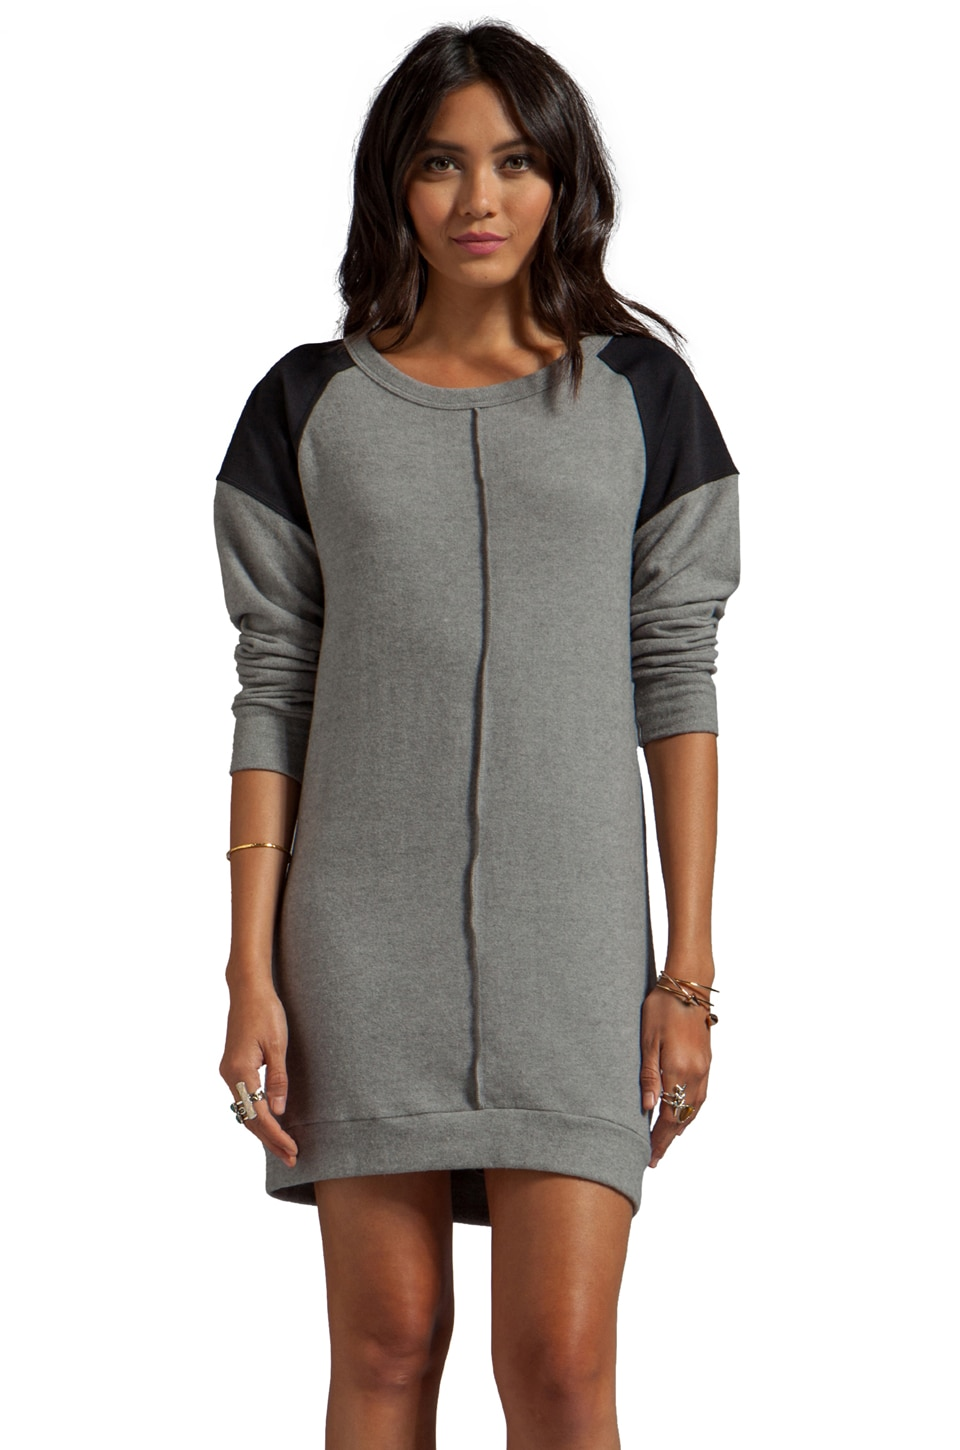 LNA Cyd Sweater Dress in Heather Grey/Black